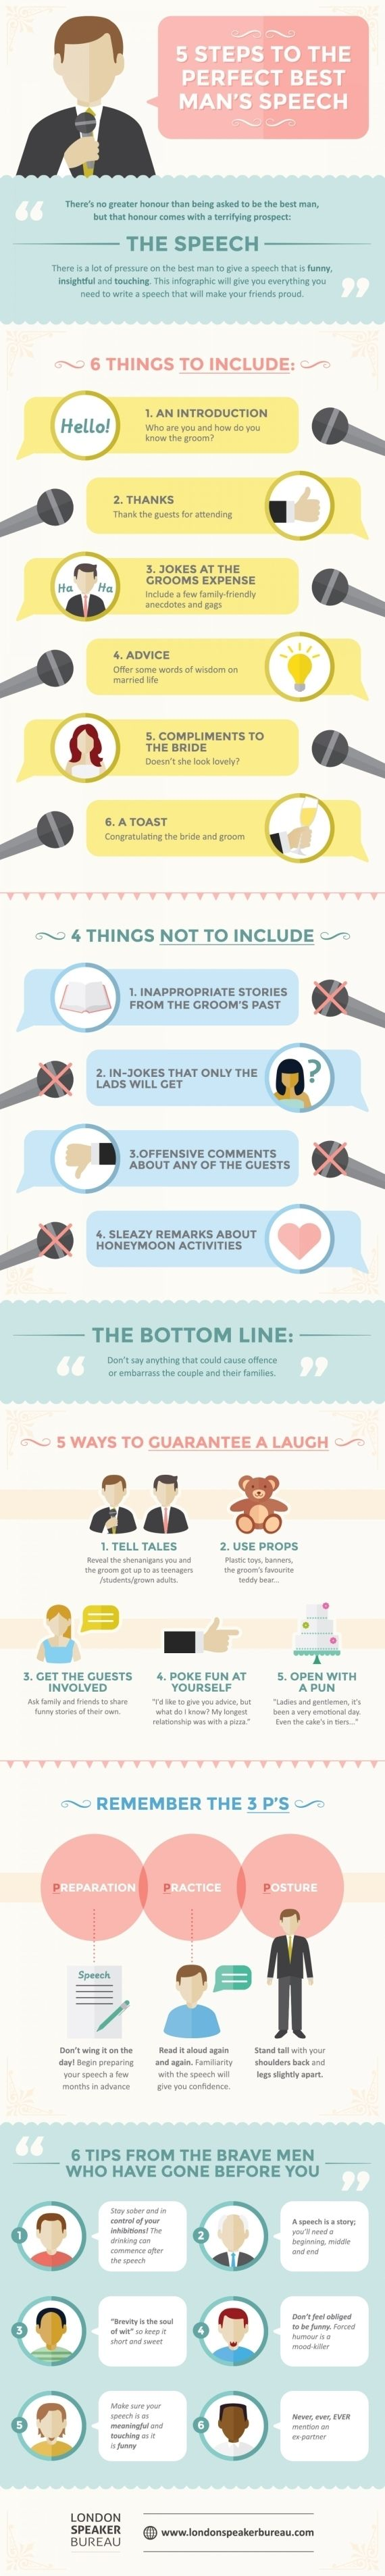 How To Instantly Give An Awesome Best Man Sch Emmaline Bride Museum Of Me Pinterest Goal School And Wedding